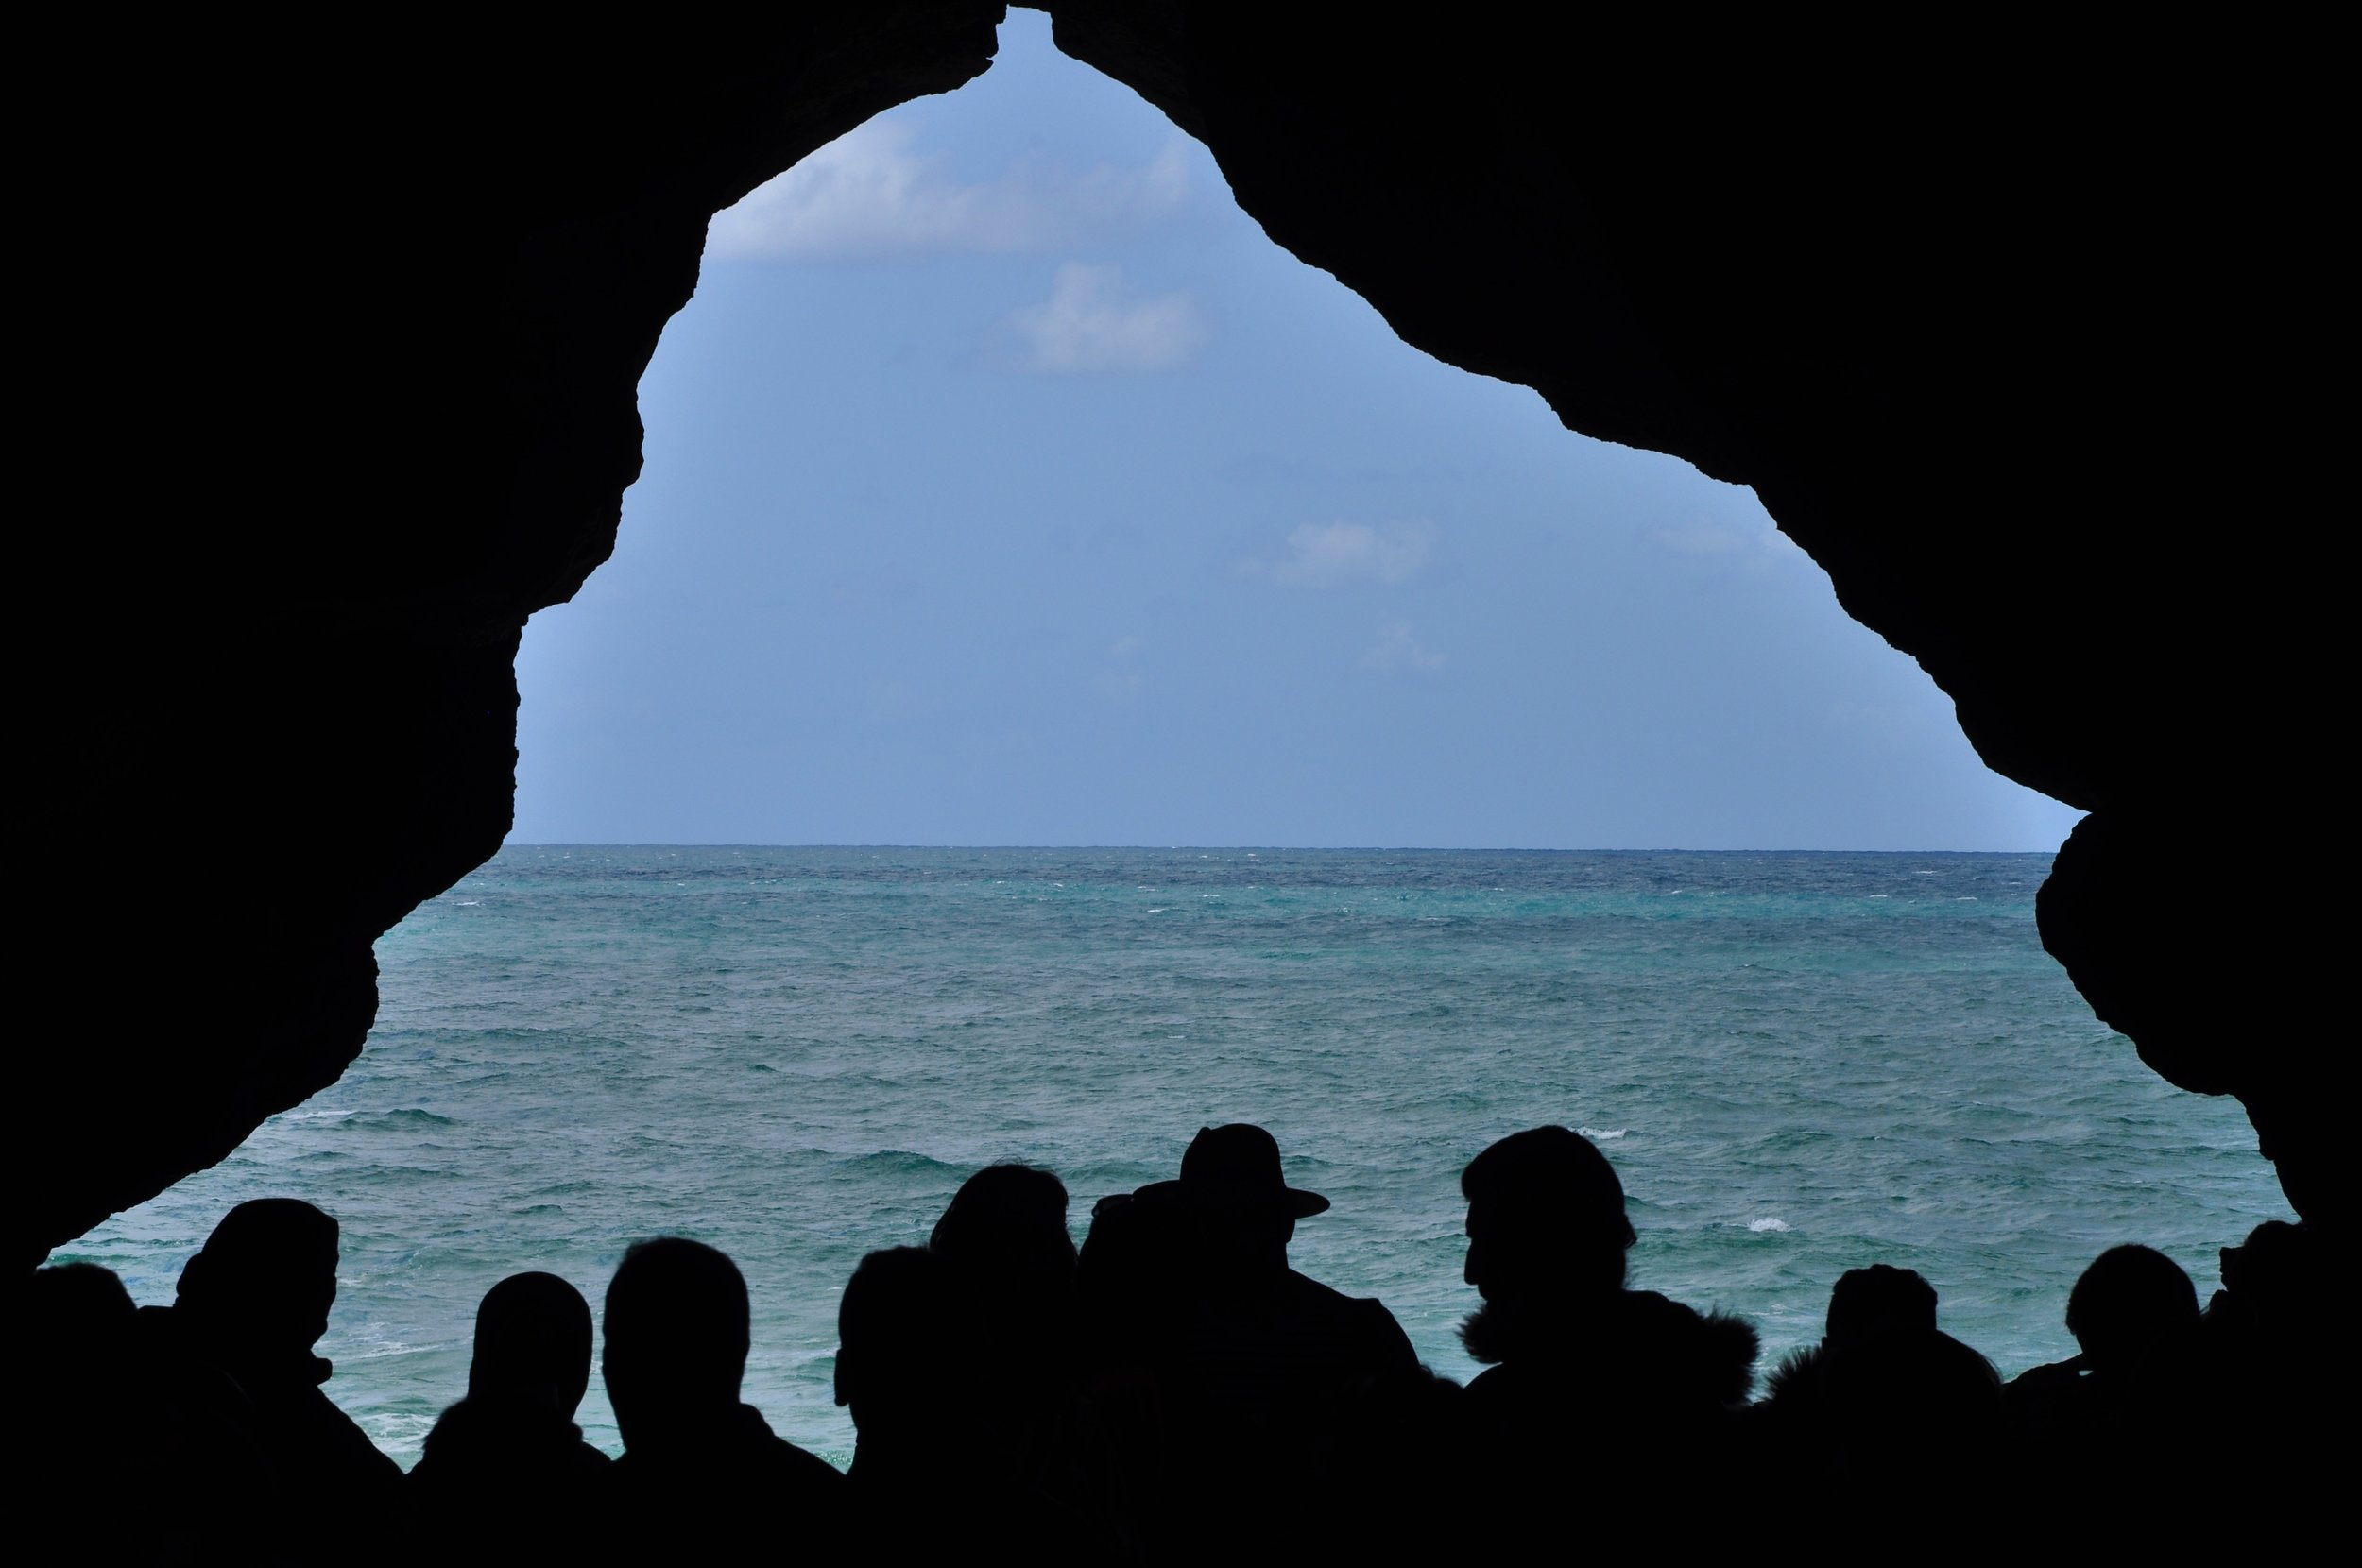 and the historic Caves of Hercules